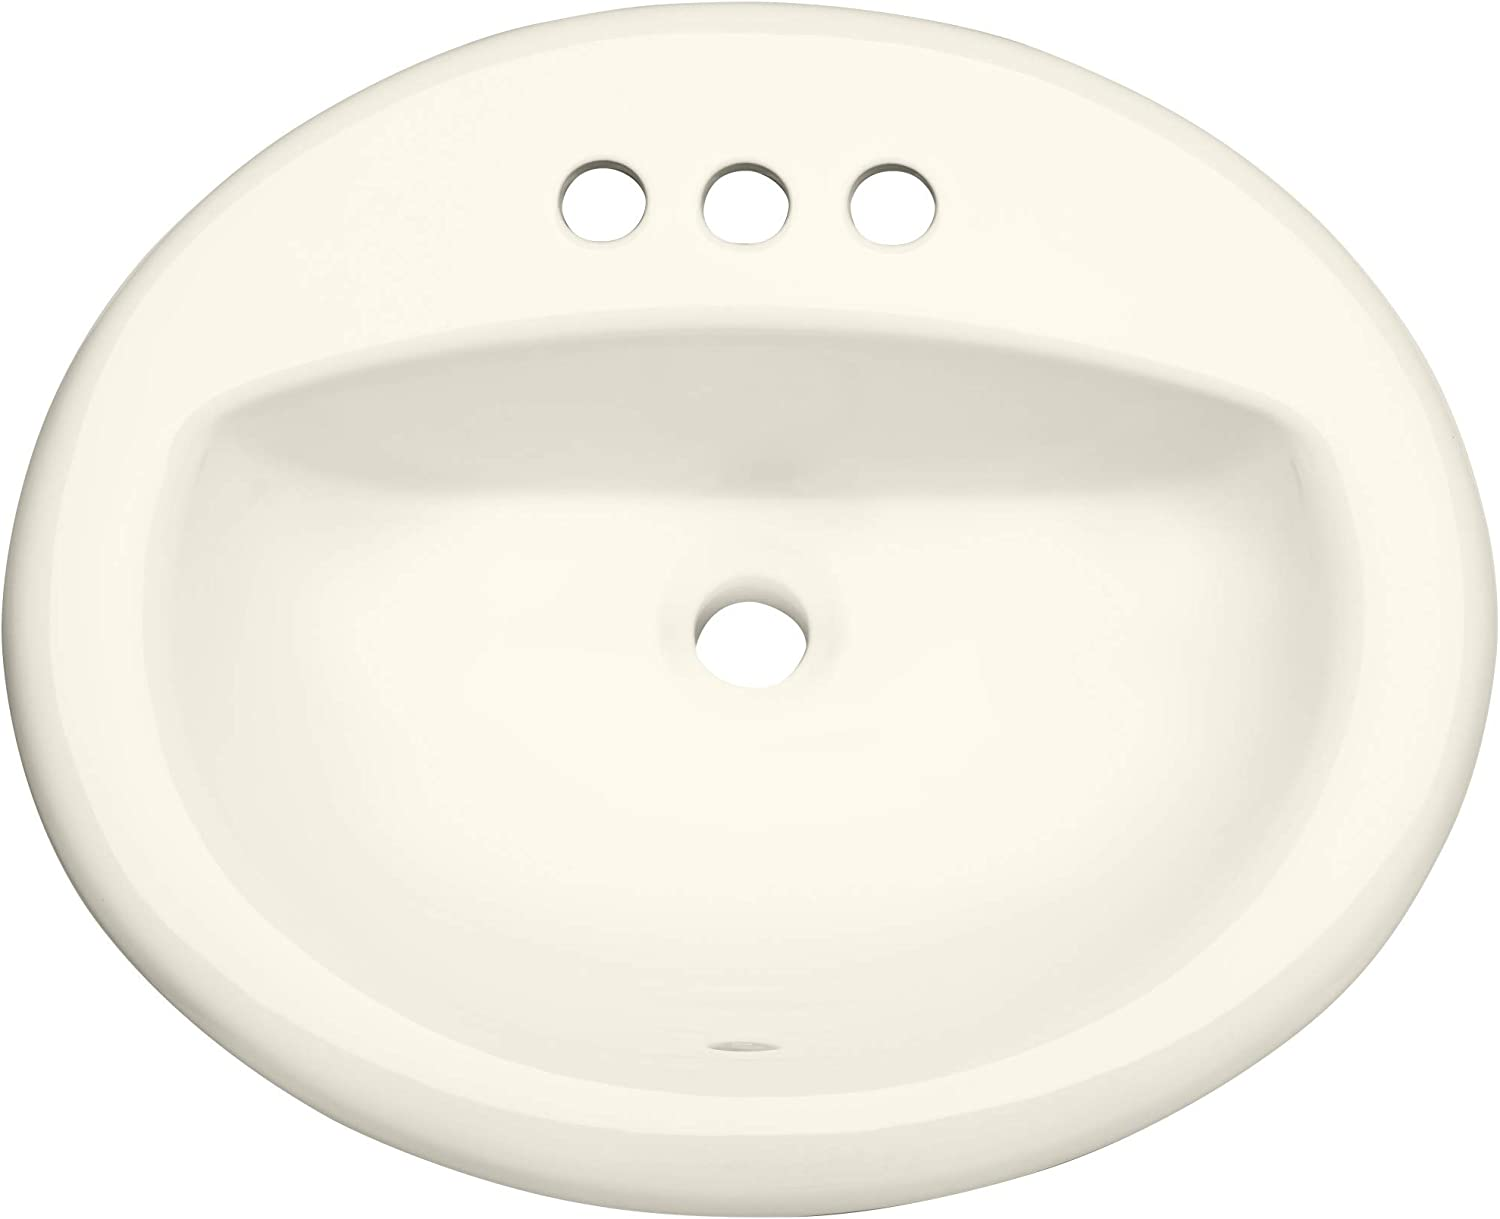 """PROFLO PF20174BS PROFLO PF20174 20-1/2"""" Self Rimming (Drop-In) Oval Bathroom Sink - 3 Holes Drilled"""